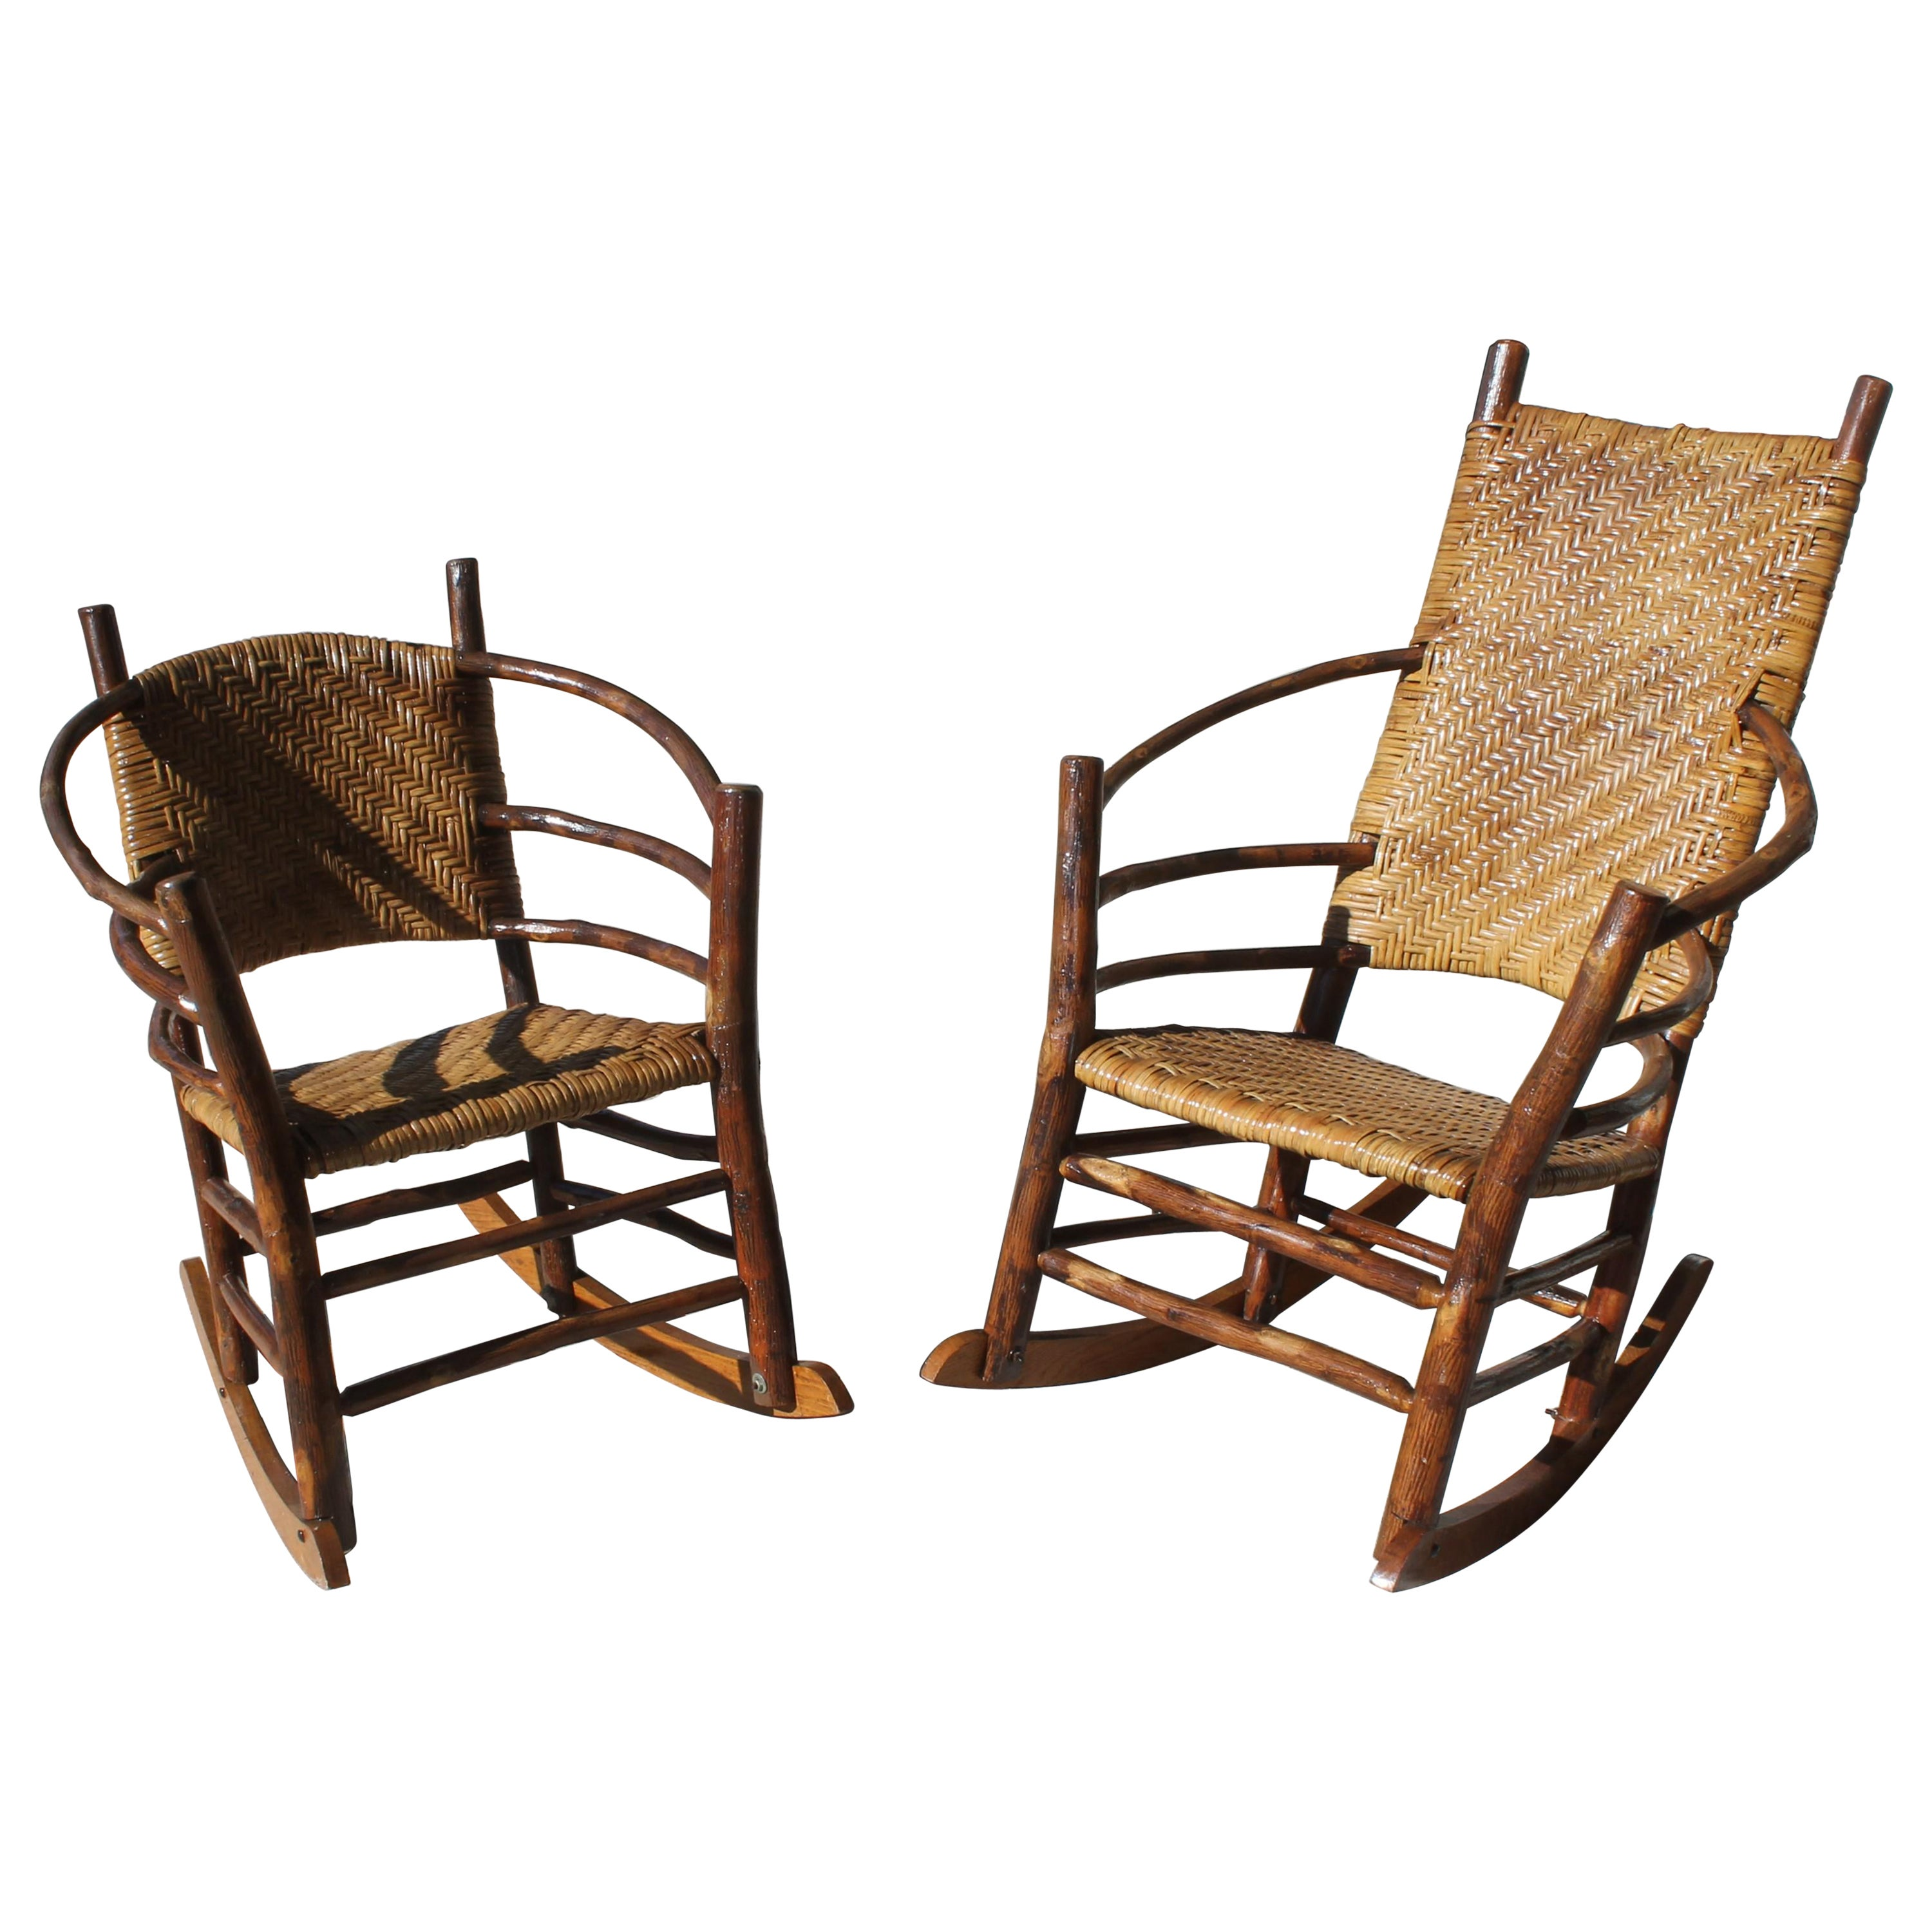 Signed Old Hickory Rocking Chairs, Pair